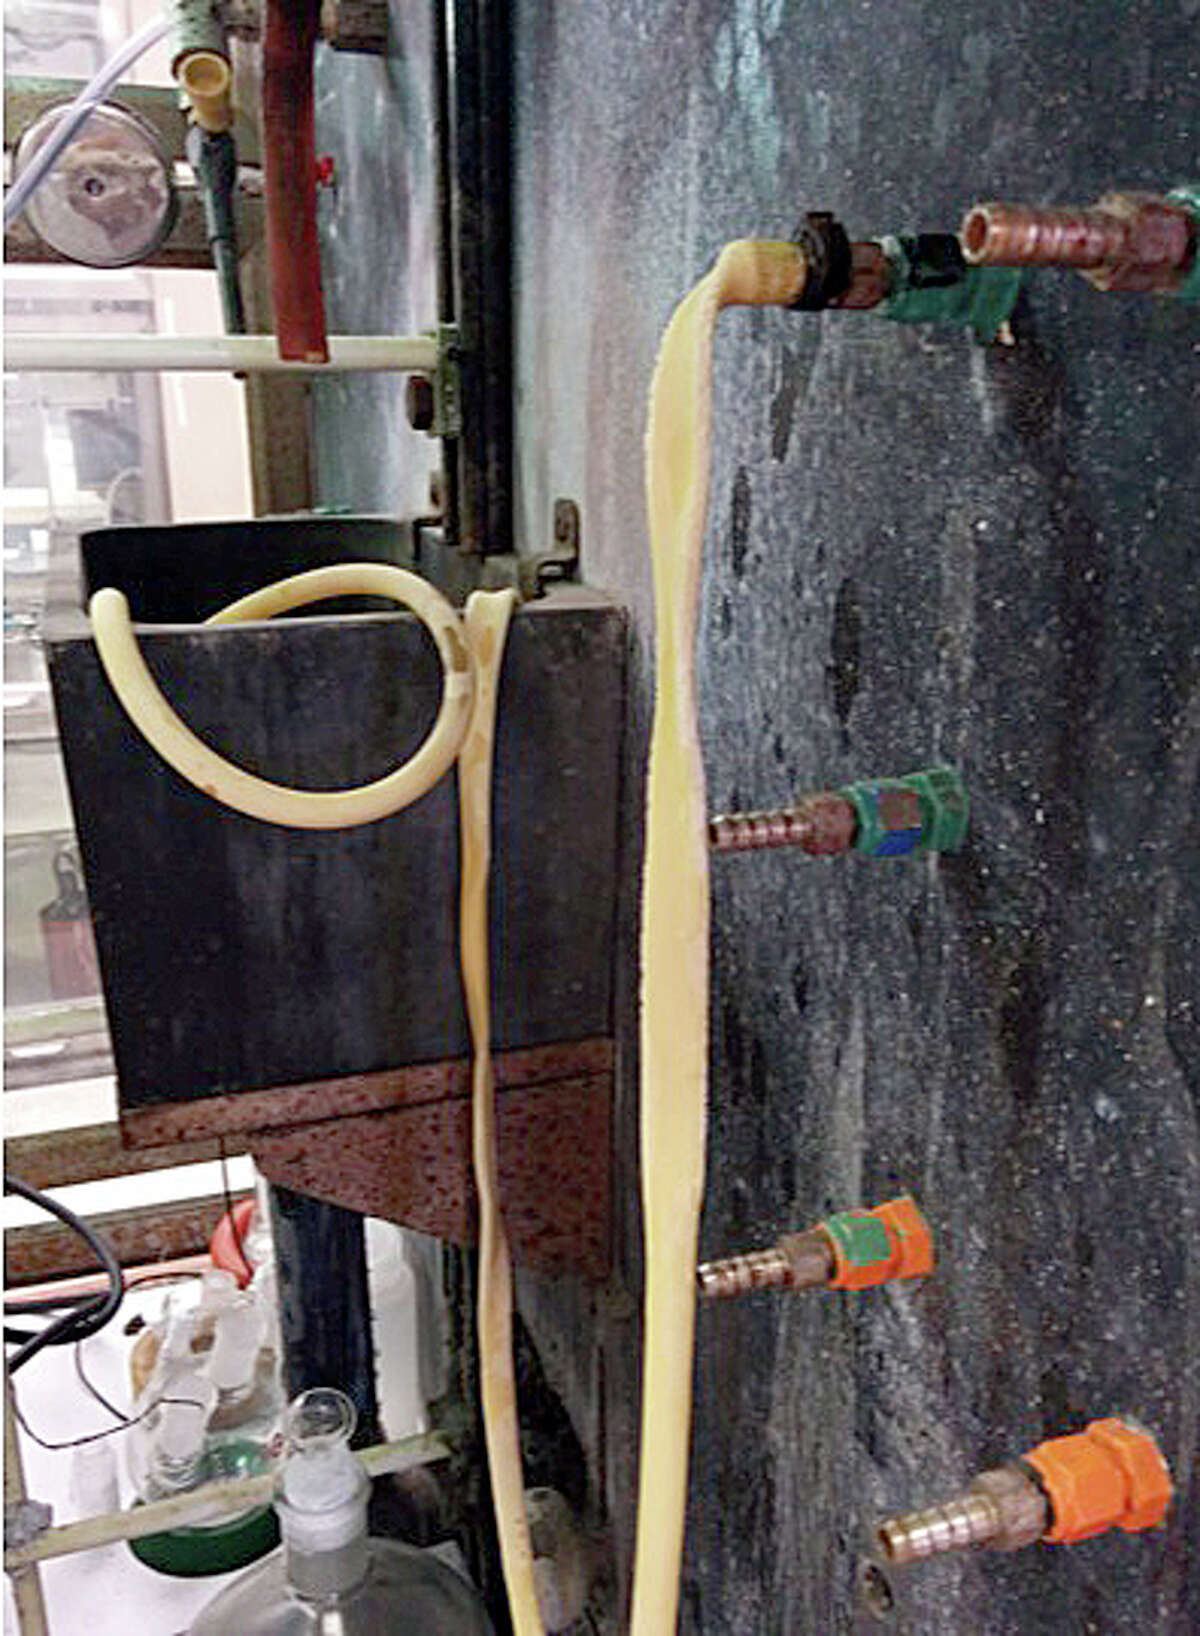 A look inside a DuPont LaPorte process lab in 2014. This old and apparently useless tubing had been left in place for years. None of the labs' monthly safety inspections seemed to affect multiple housekeeping and safety issues, said former DuPont lab technician Barbara Acker.